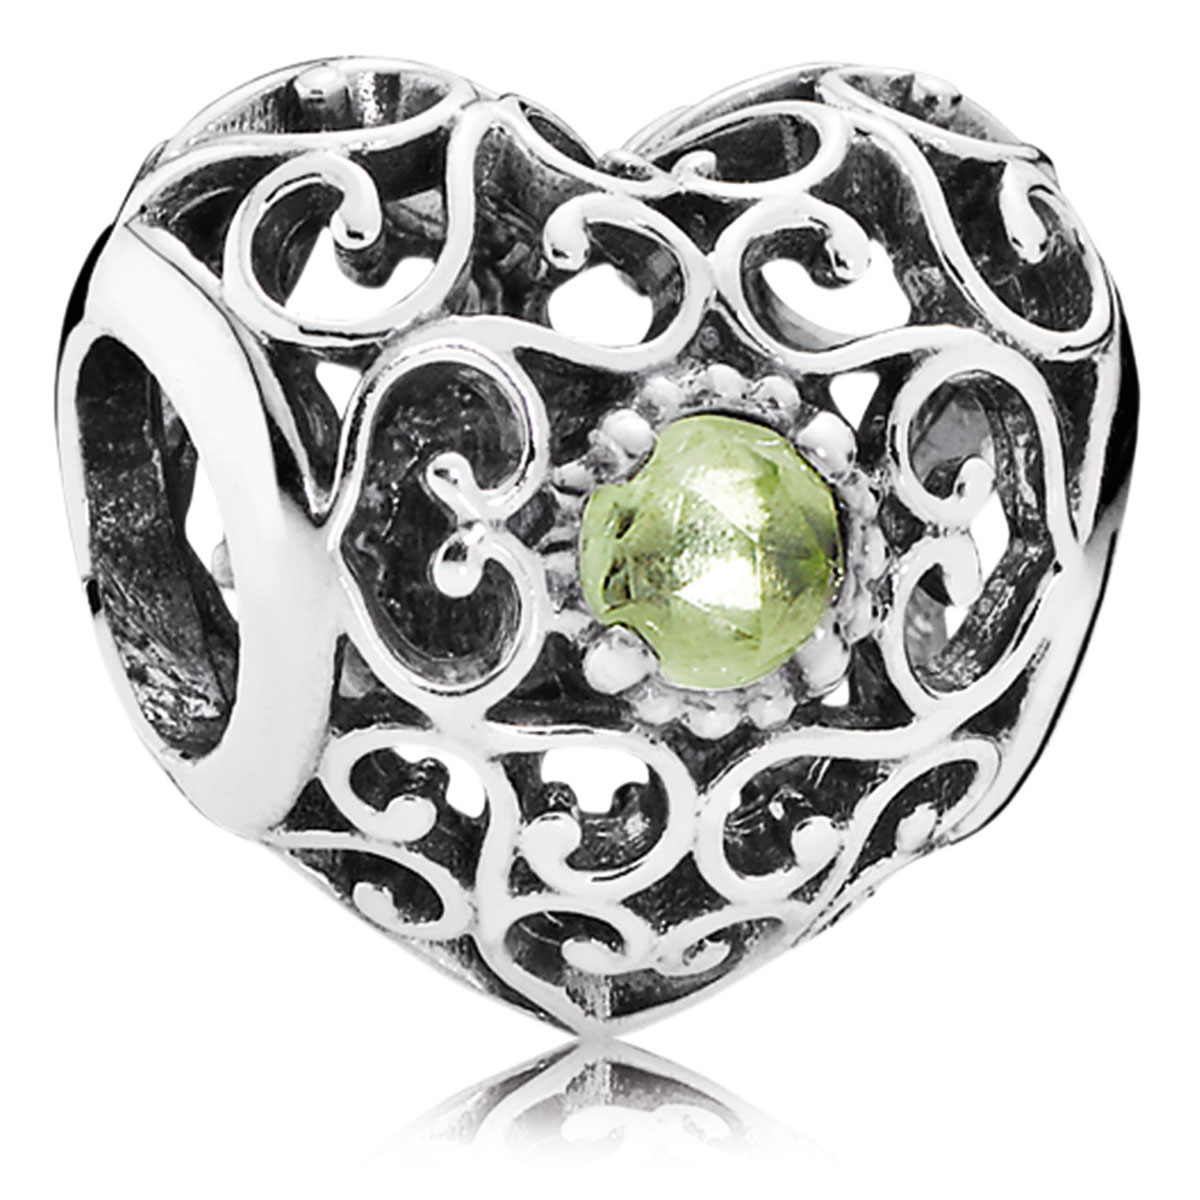 802-3105-PANDORA August Signature Heart with Peridot Charm *OUT OF STOCK*